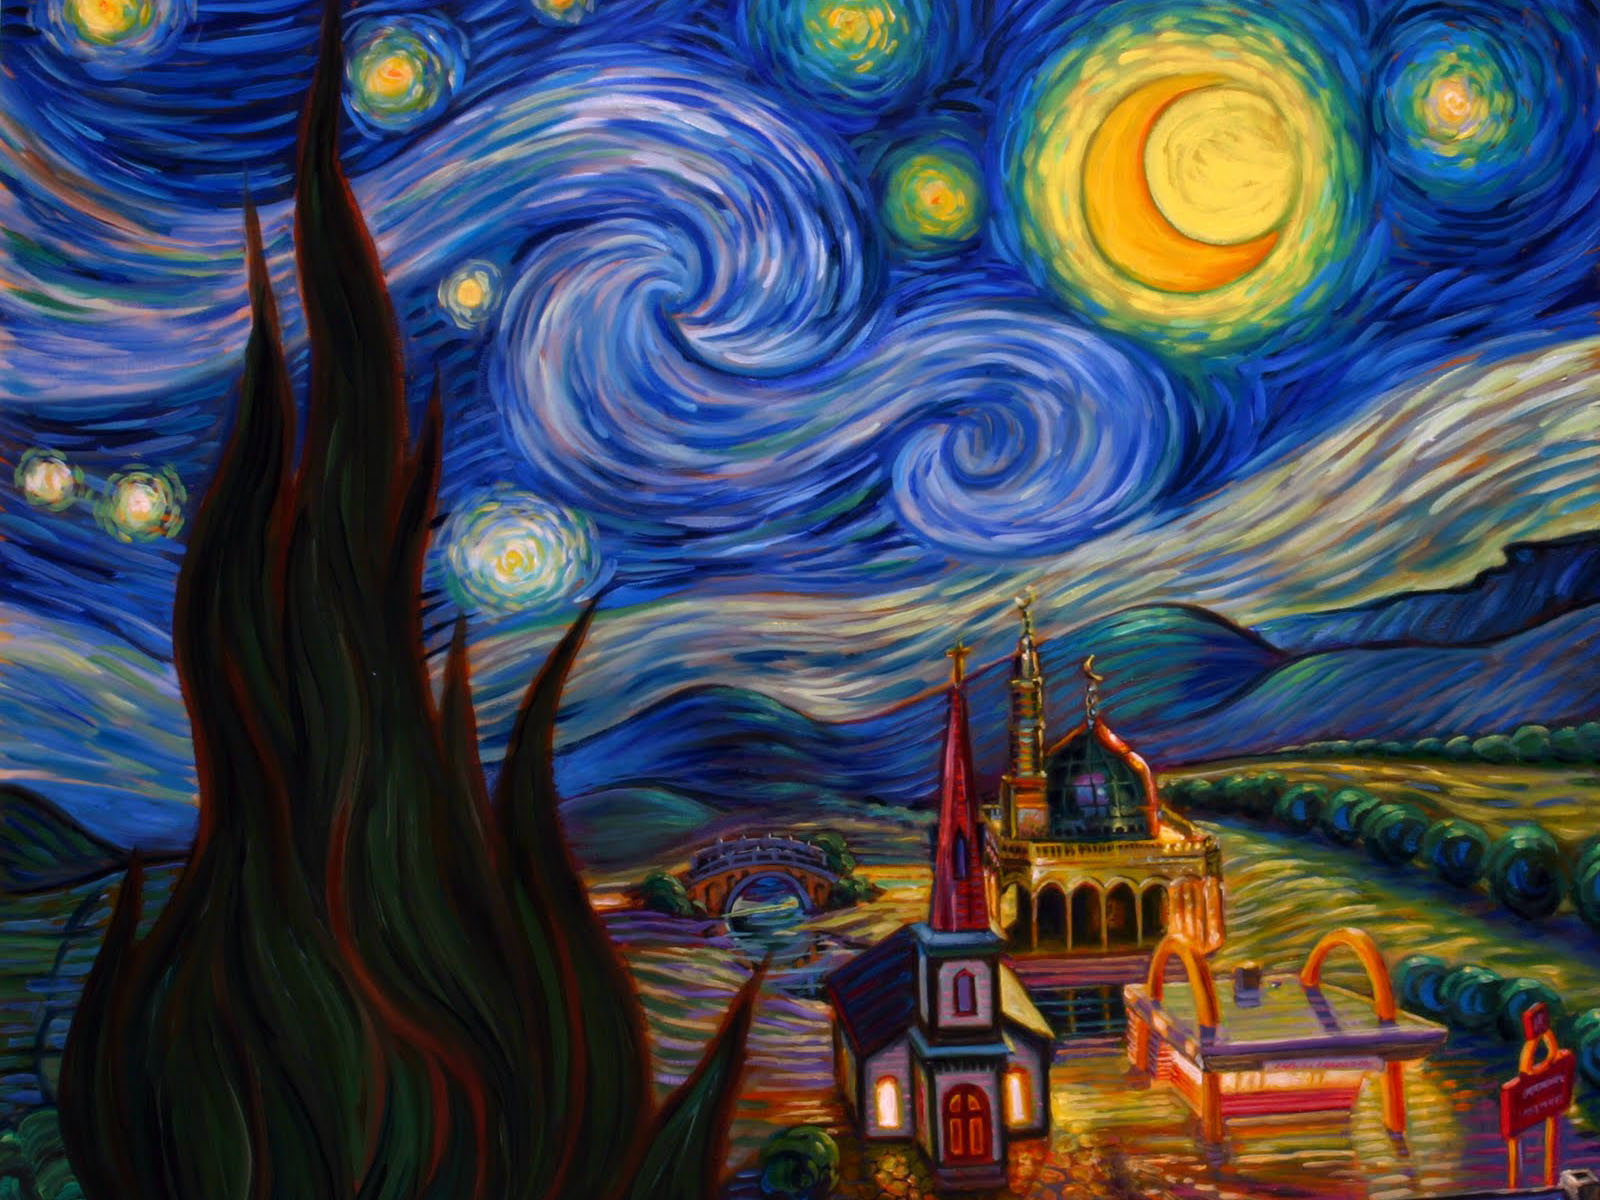 Free Wallpapers Of Cars And Bikes For Desktop Wallpapers Van Goghs Starry Night